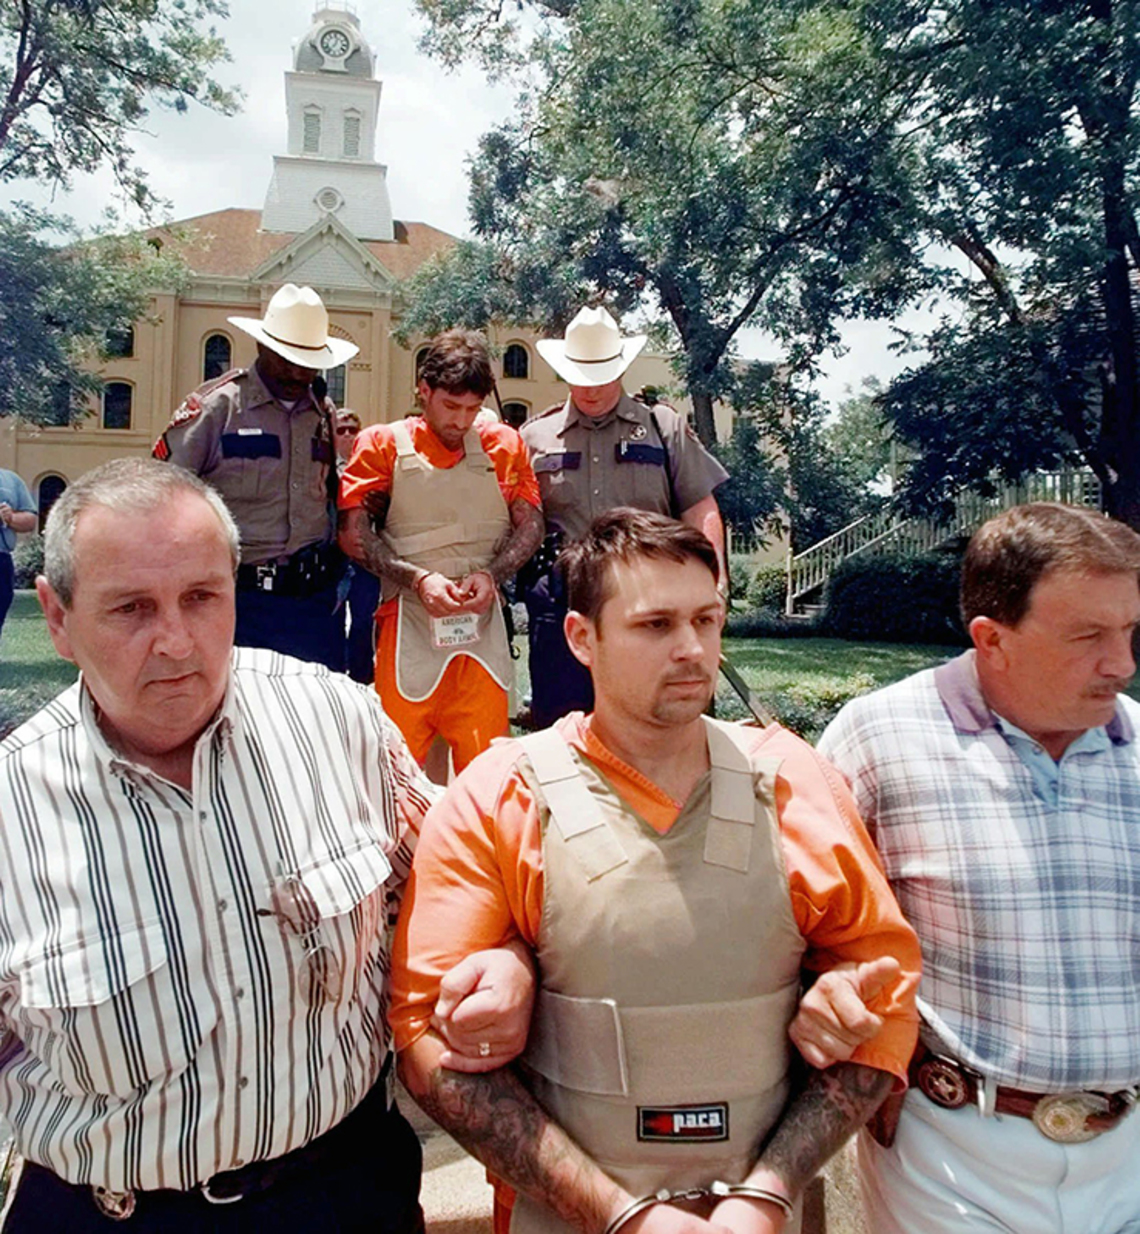 John William King and Lawrence Russell Brewer were sentenced to death for the murder of James Byrd Jr. in Jasper County in Texas in 1998.